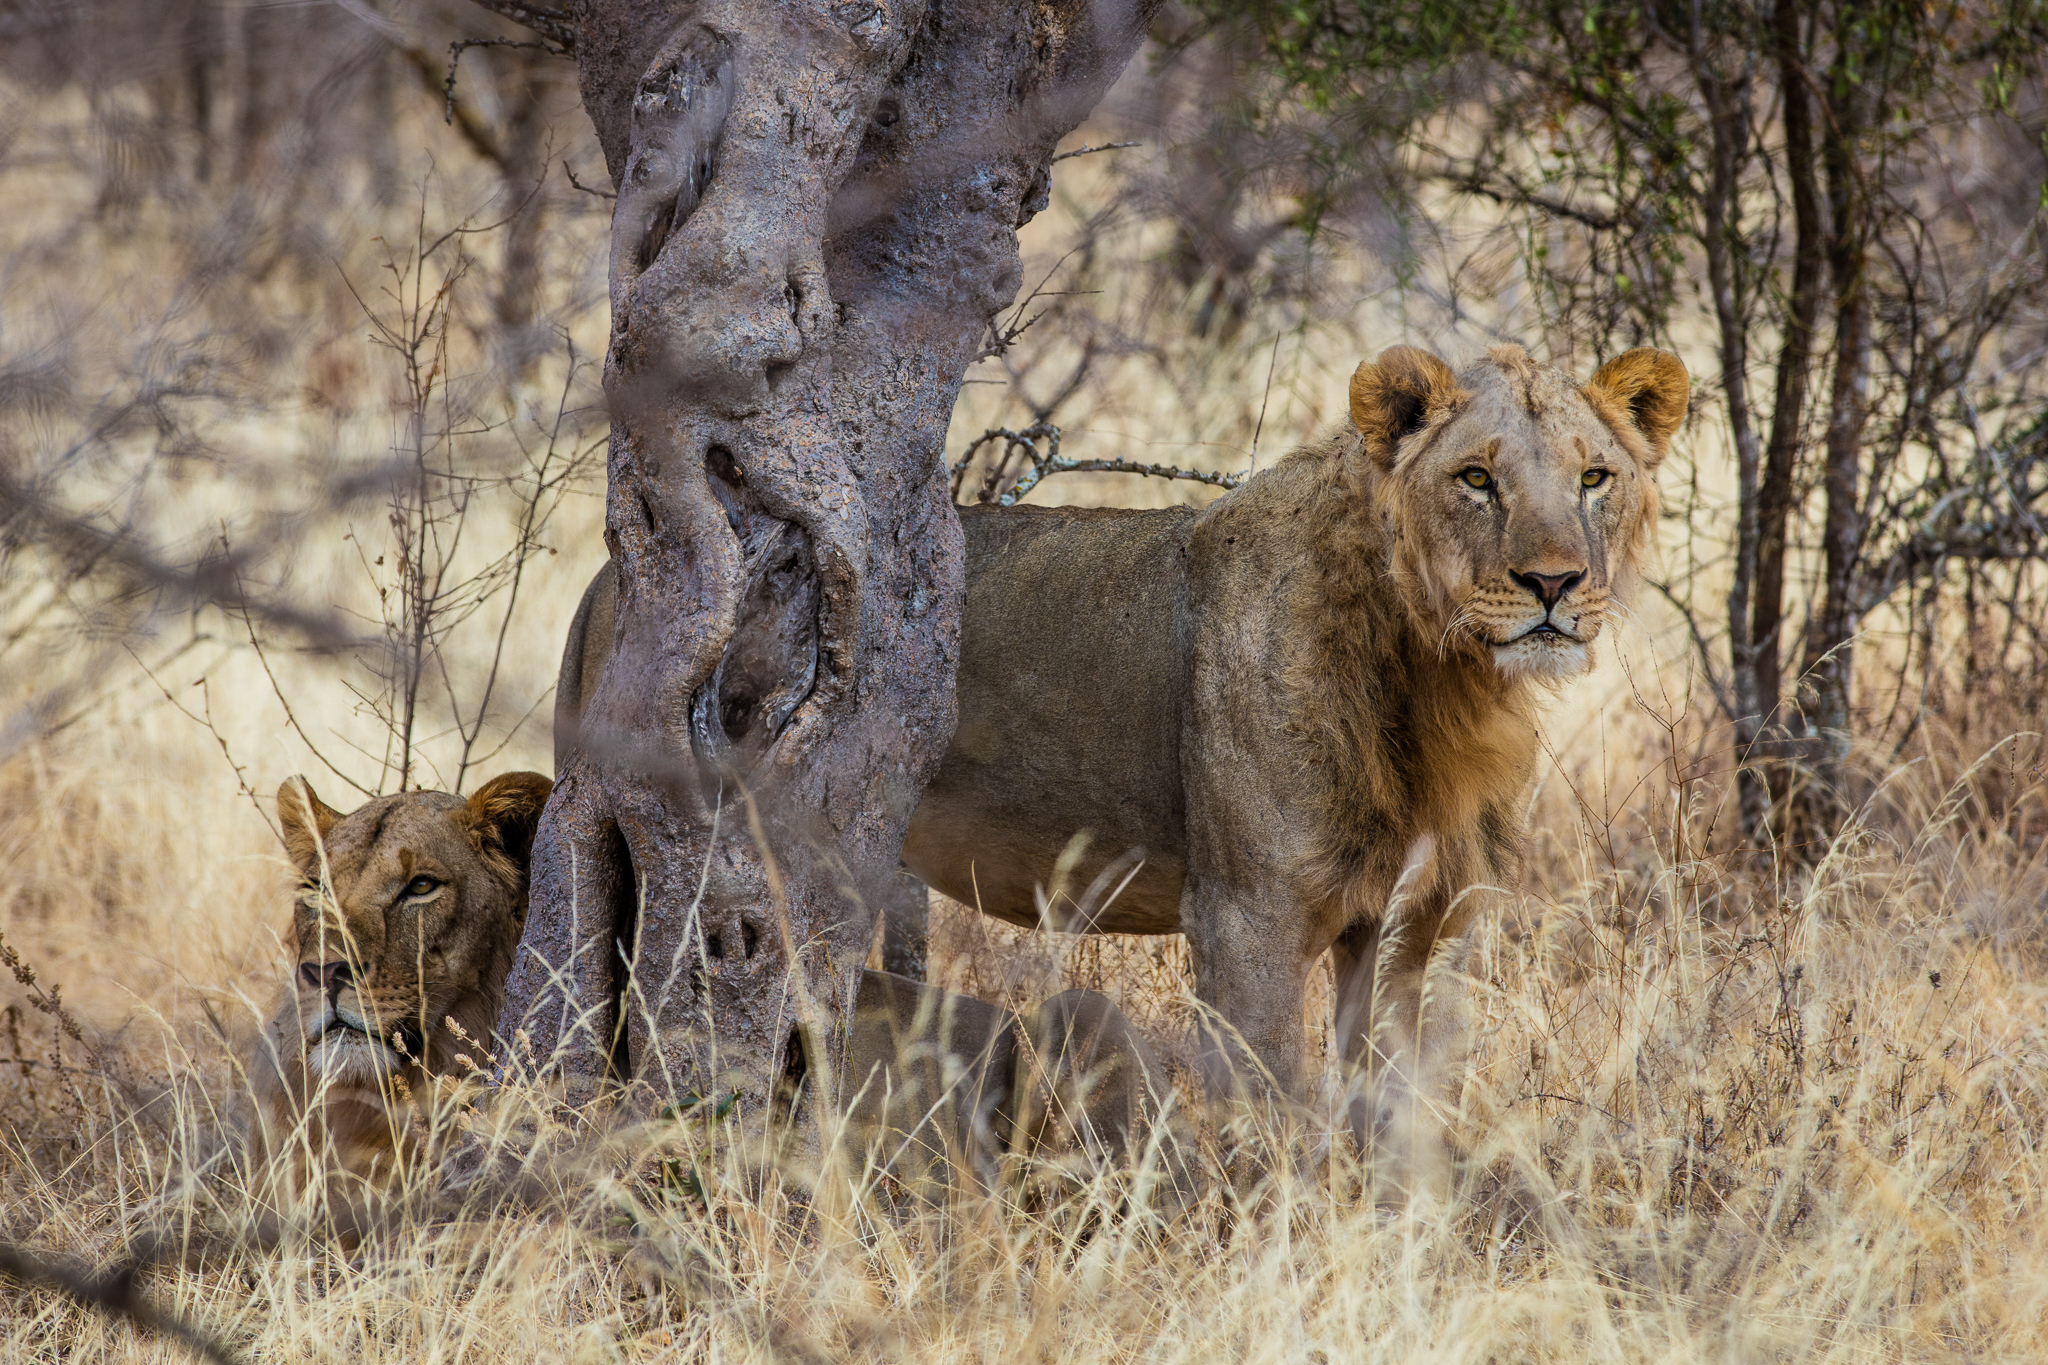 A pair of male lions takes shelter in the shade of a tree.